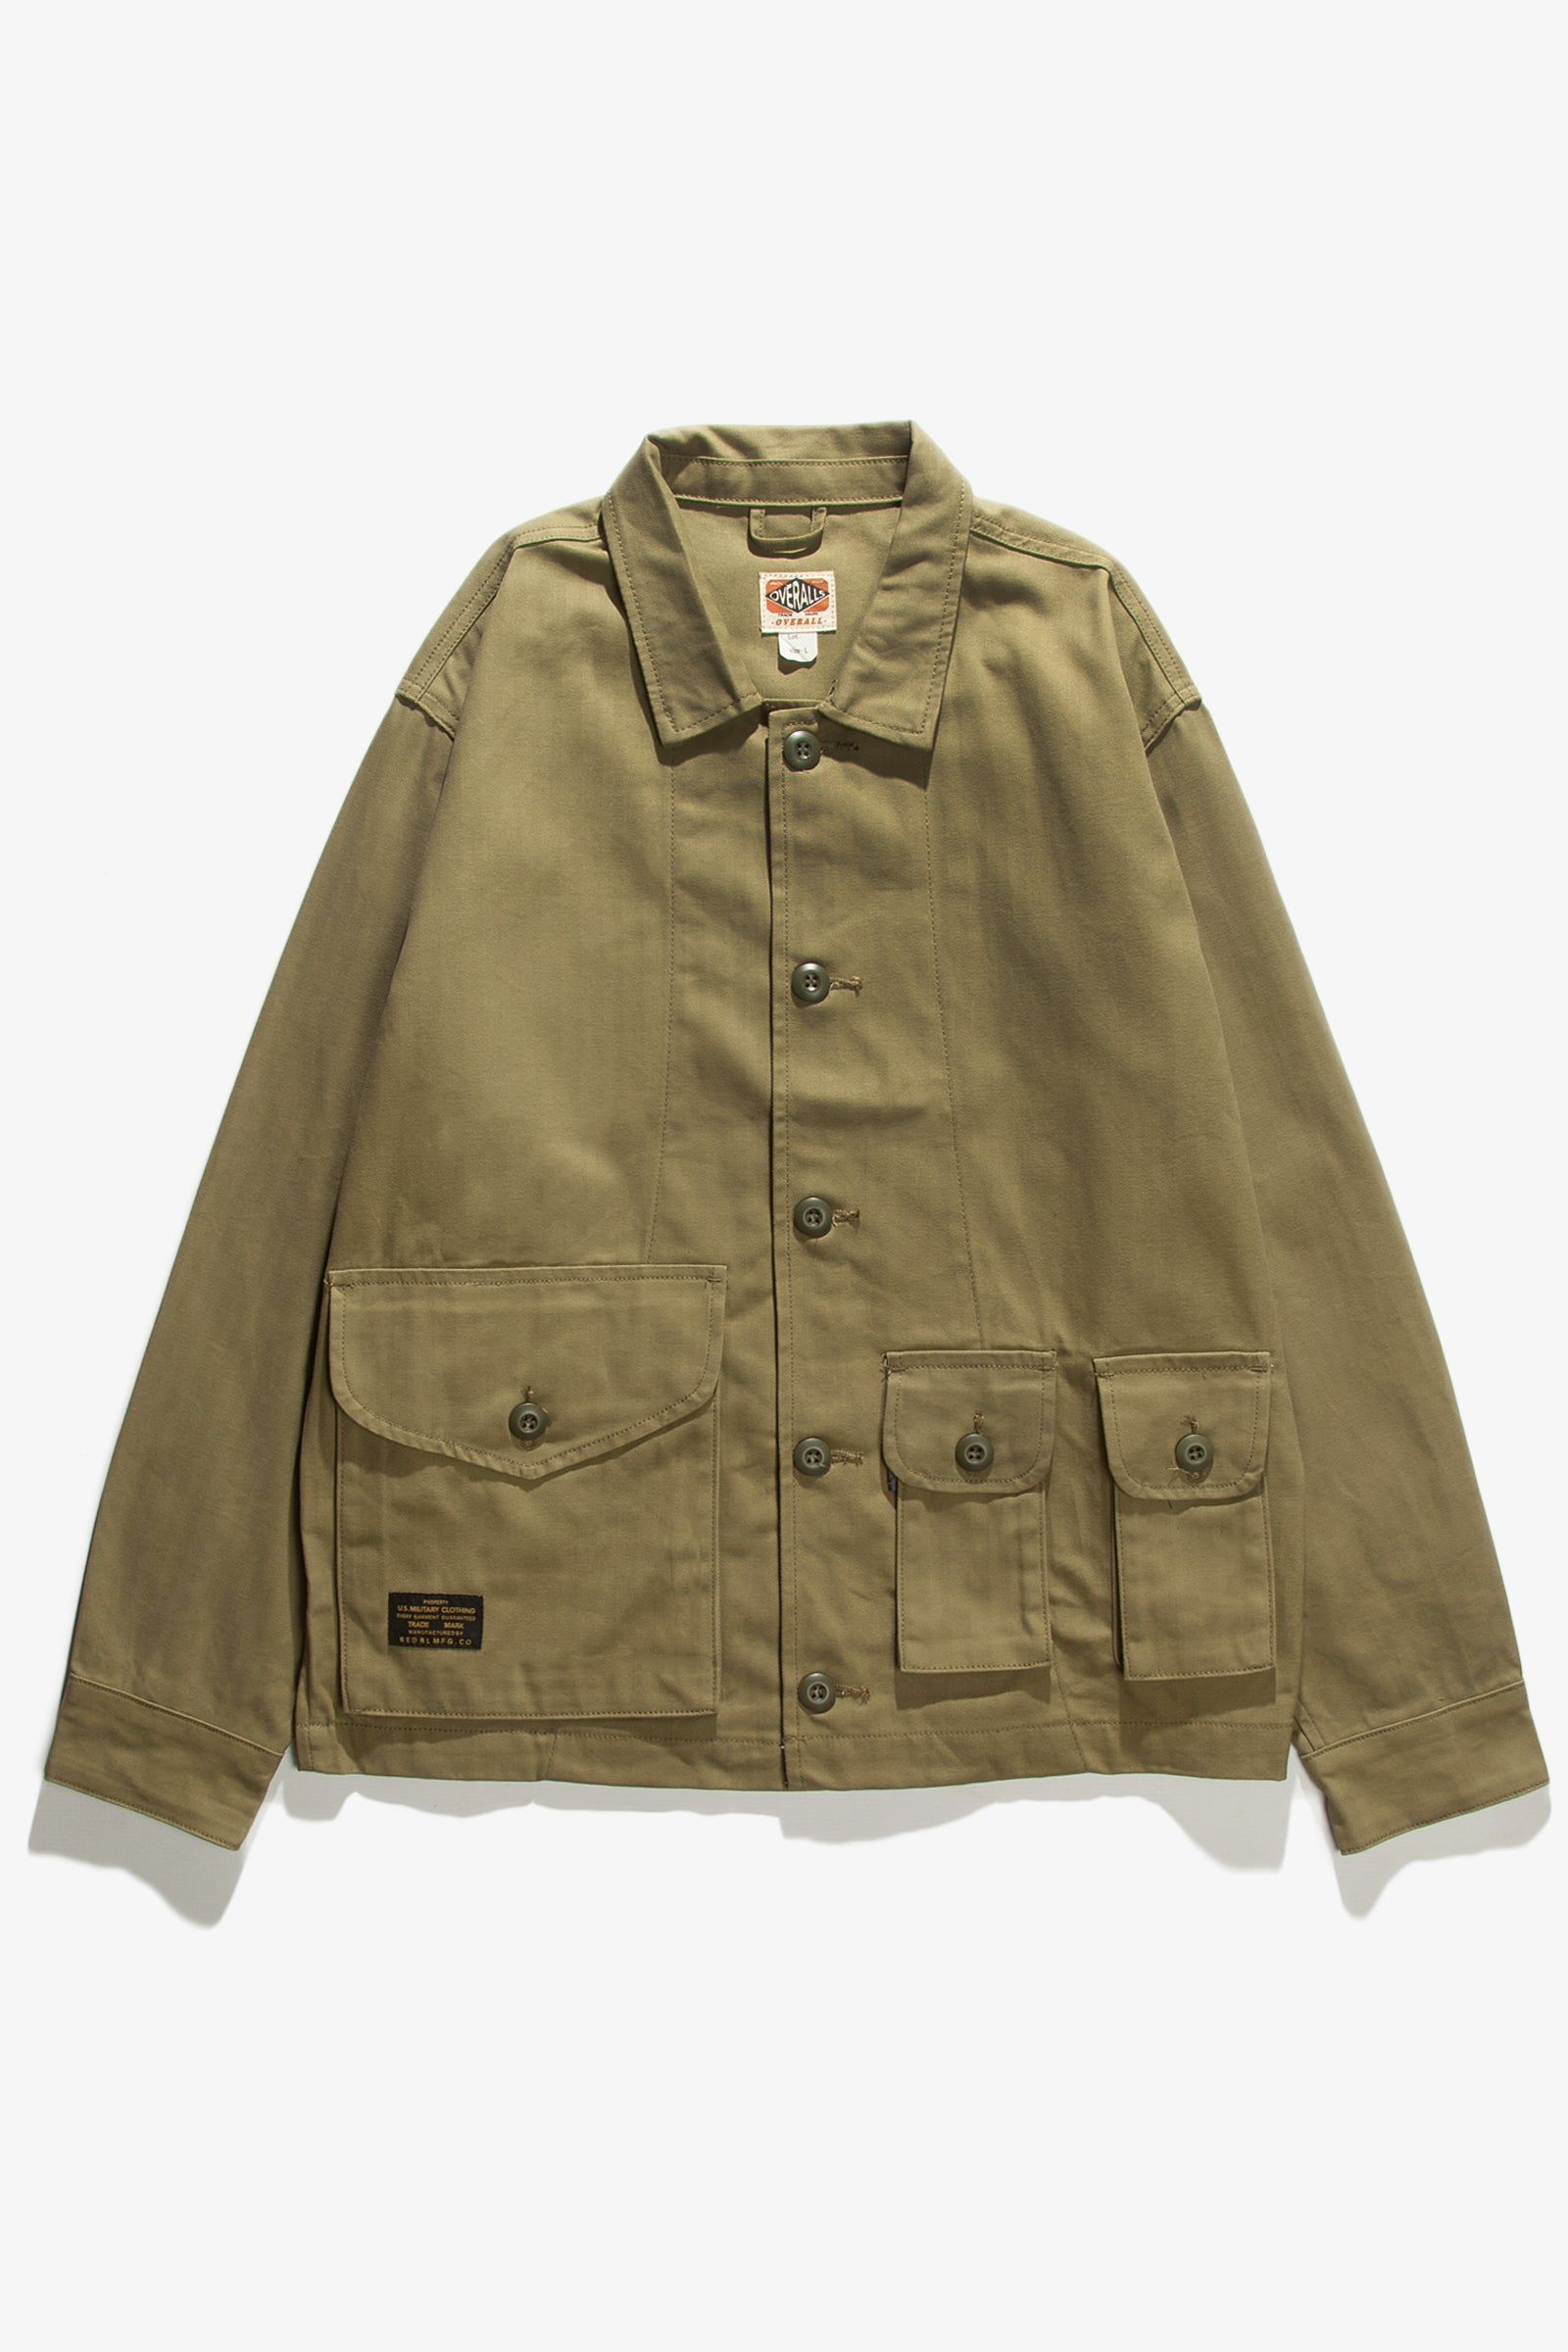 Red Ruggison - Twill Military Work Jacket - Olive